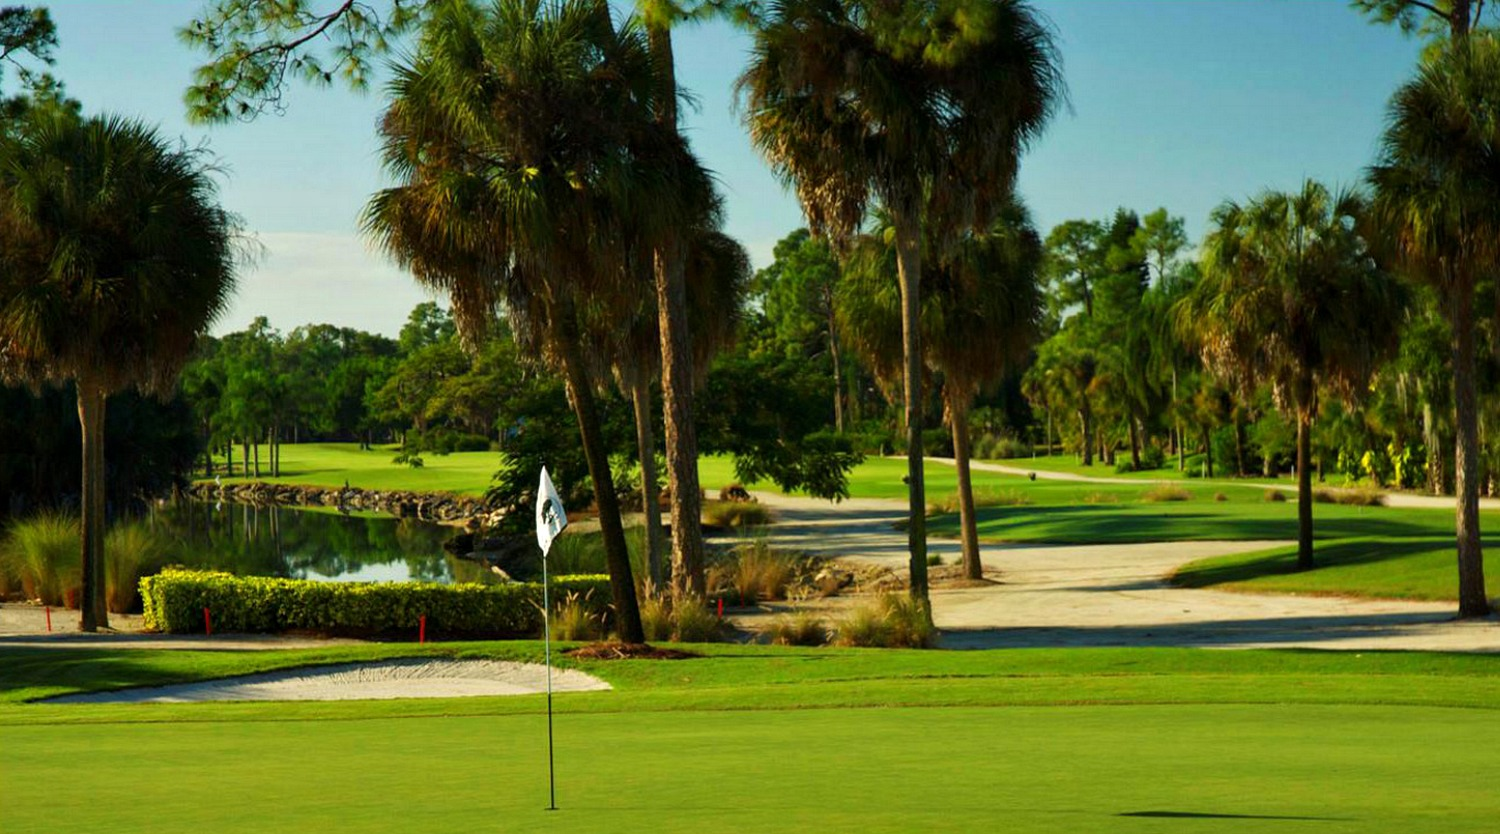 Overview of golf course named Forest Country Club, The